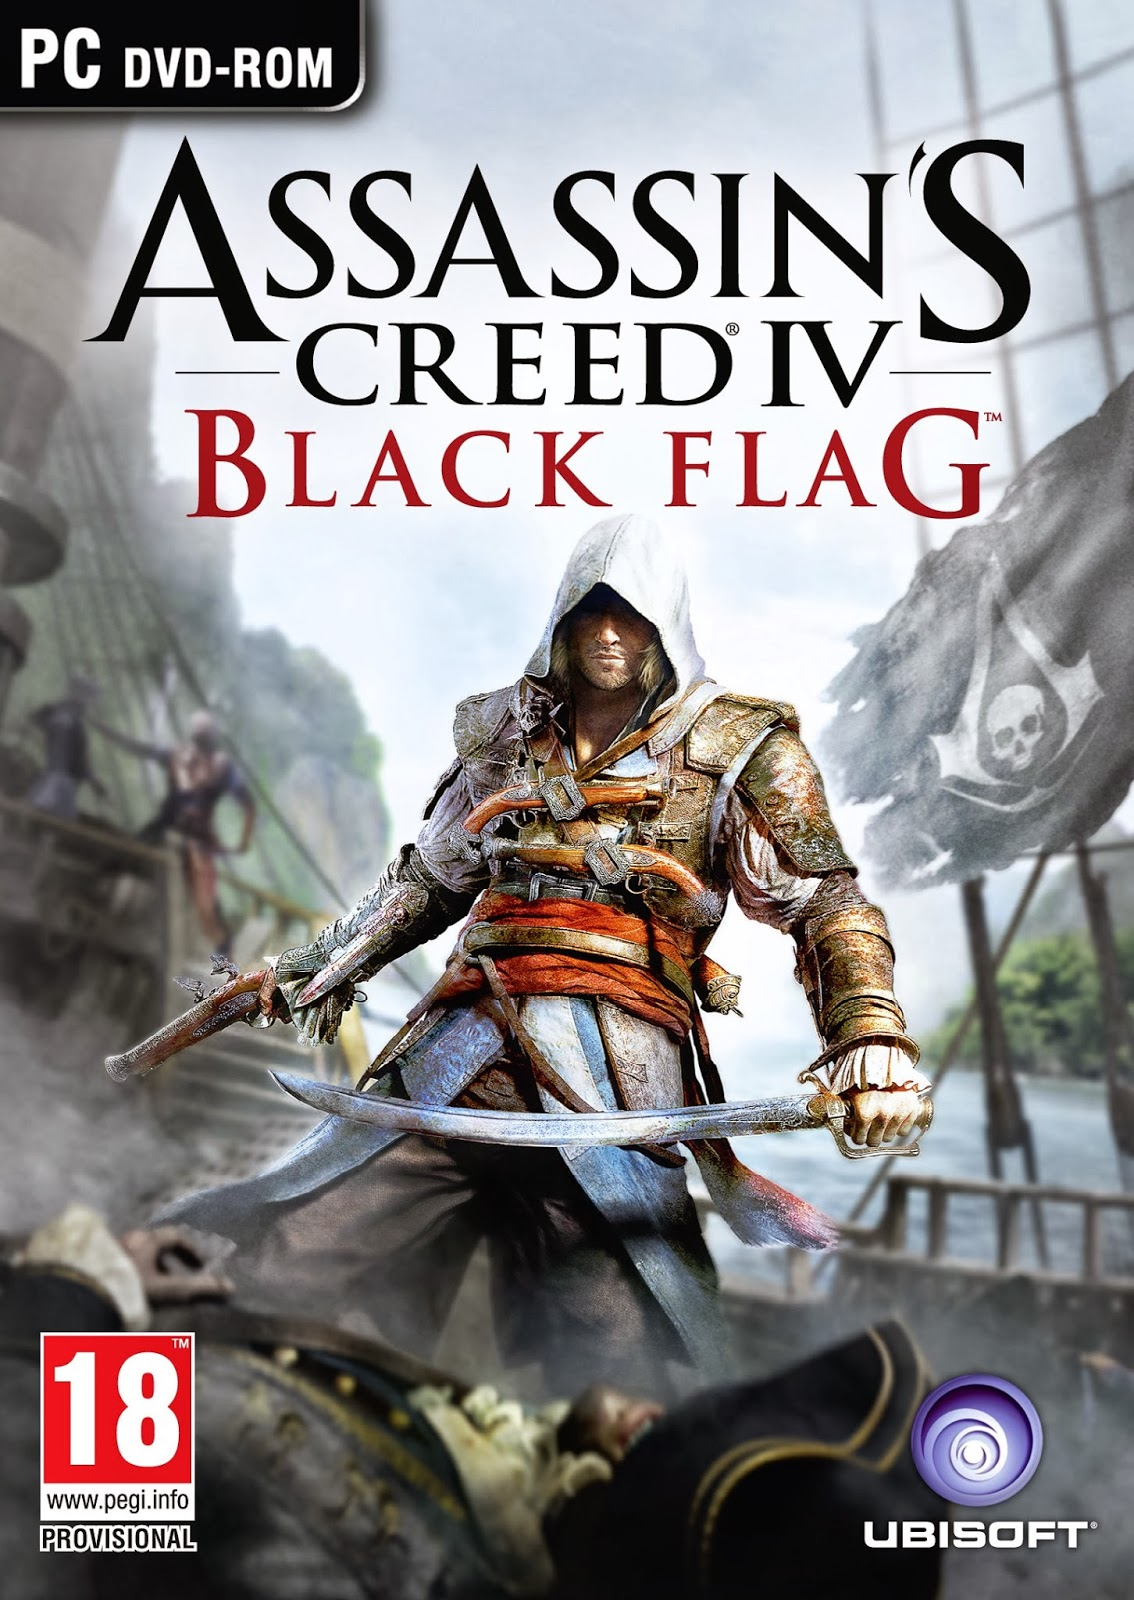 Assassins Creed IV Black Flag Announced PC Cover